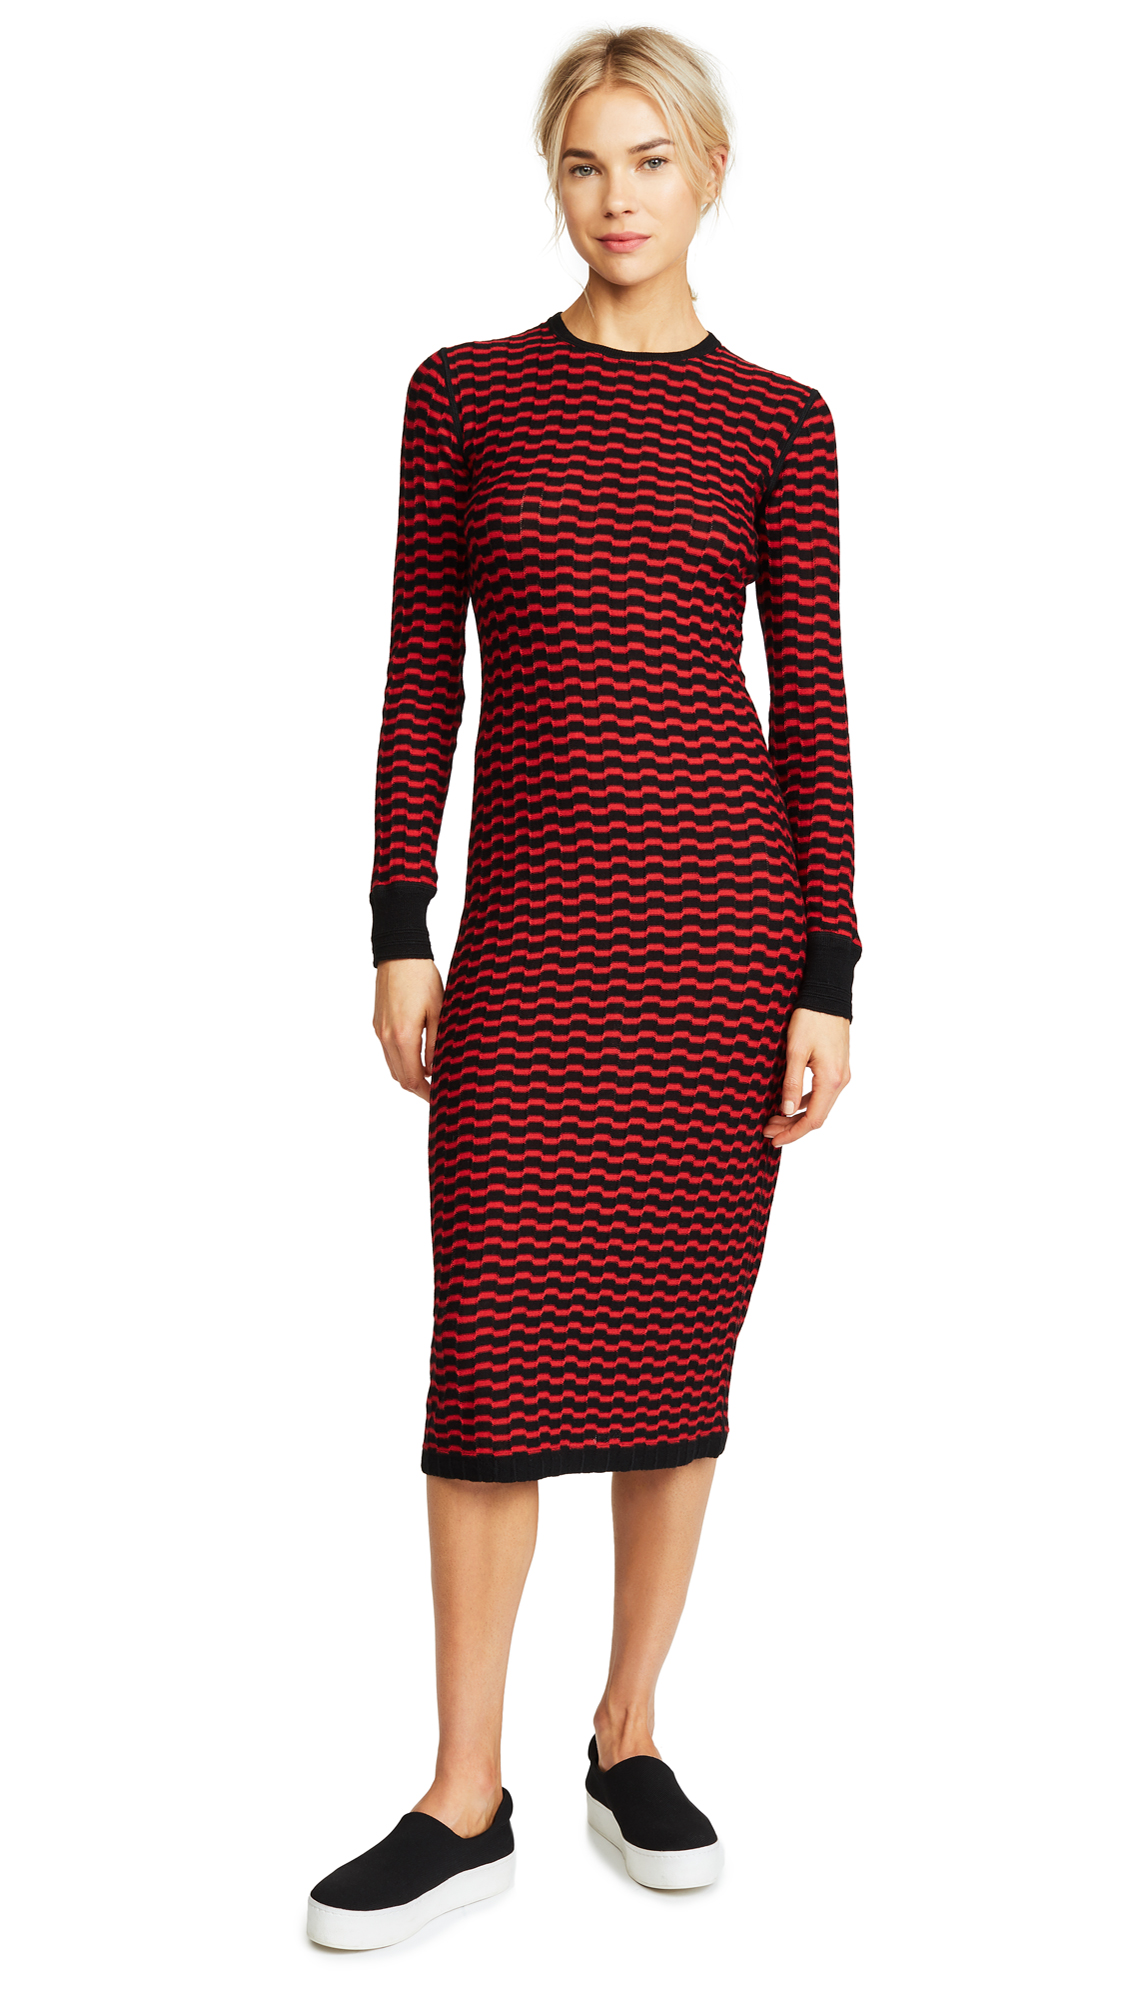 Marc Jacobs Thermal Dress